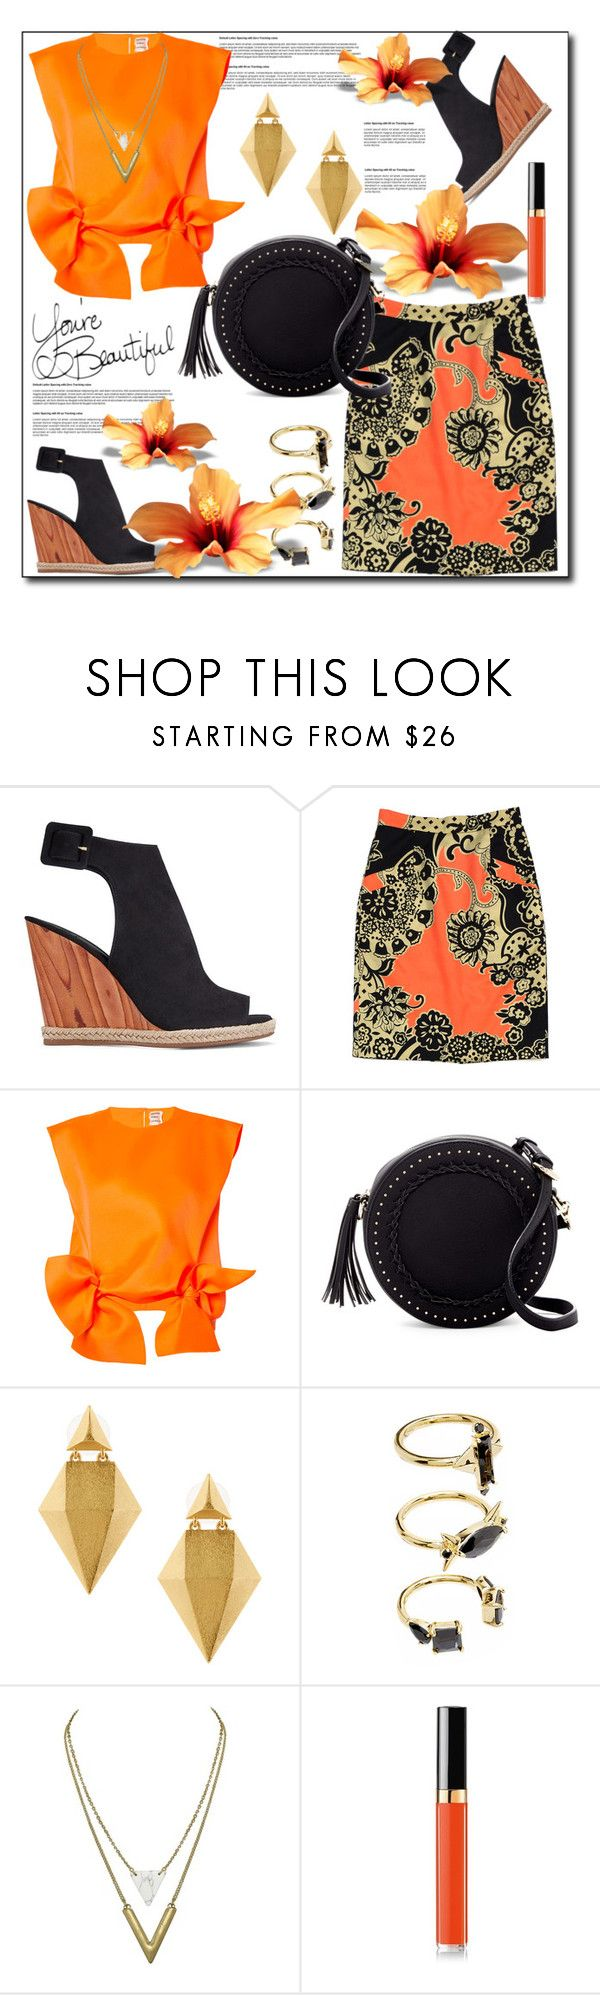 """""""Floral Print Pencil Skirt... Orange Print Skirt & Orange Short Sleeve Top"""" by helenaymangual ❤ liked on Polyvore featuring Tory Burch, TIBI, Maison Rabih Kayrouz, Urban Expressions, Stephanie Kantis, Noir Jewelry and Chanel"""